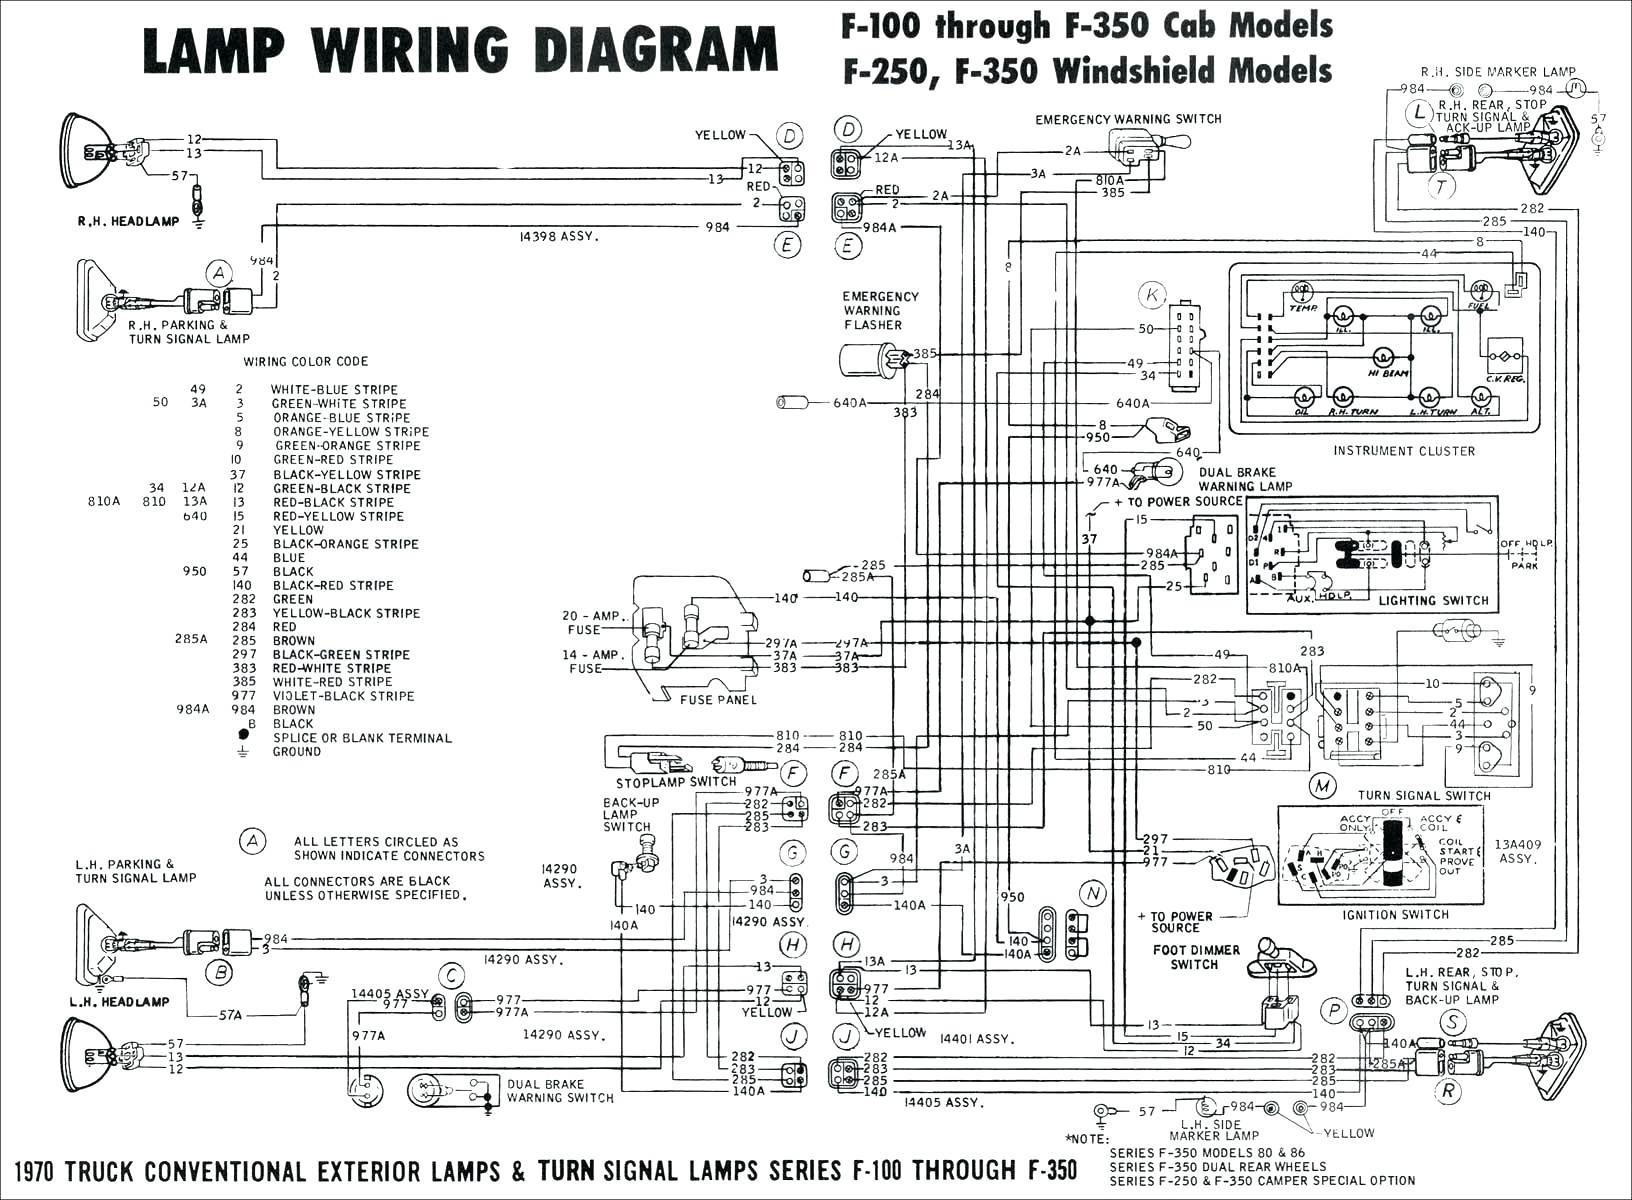 Wiring Diagram For Audi A4 1997 Save Audi A4 Wiring Diagram 1996 Electrical Drawing Wiring Diagram •